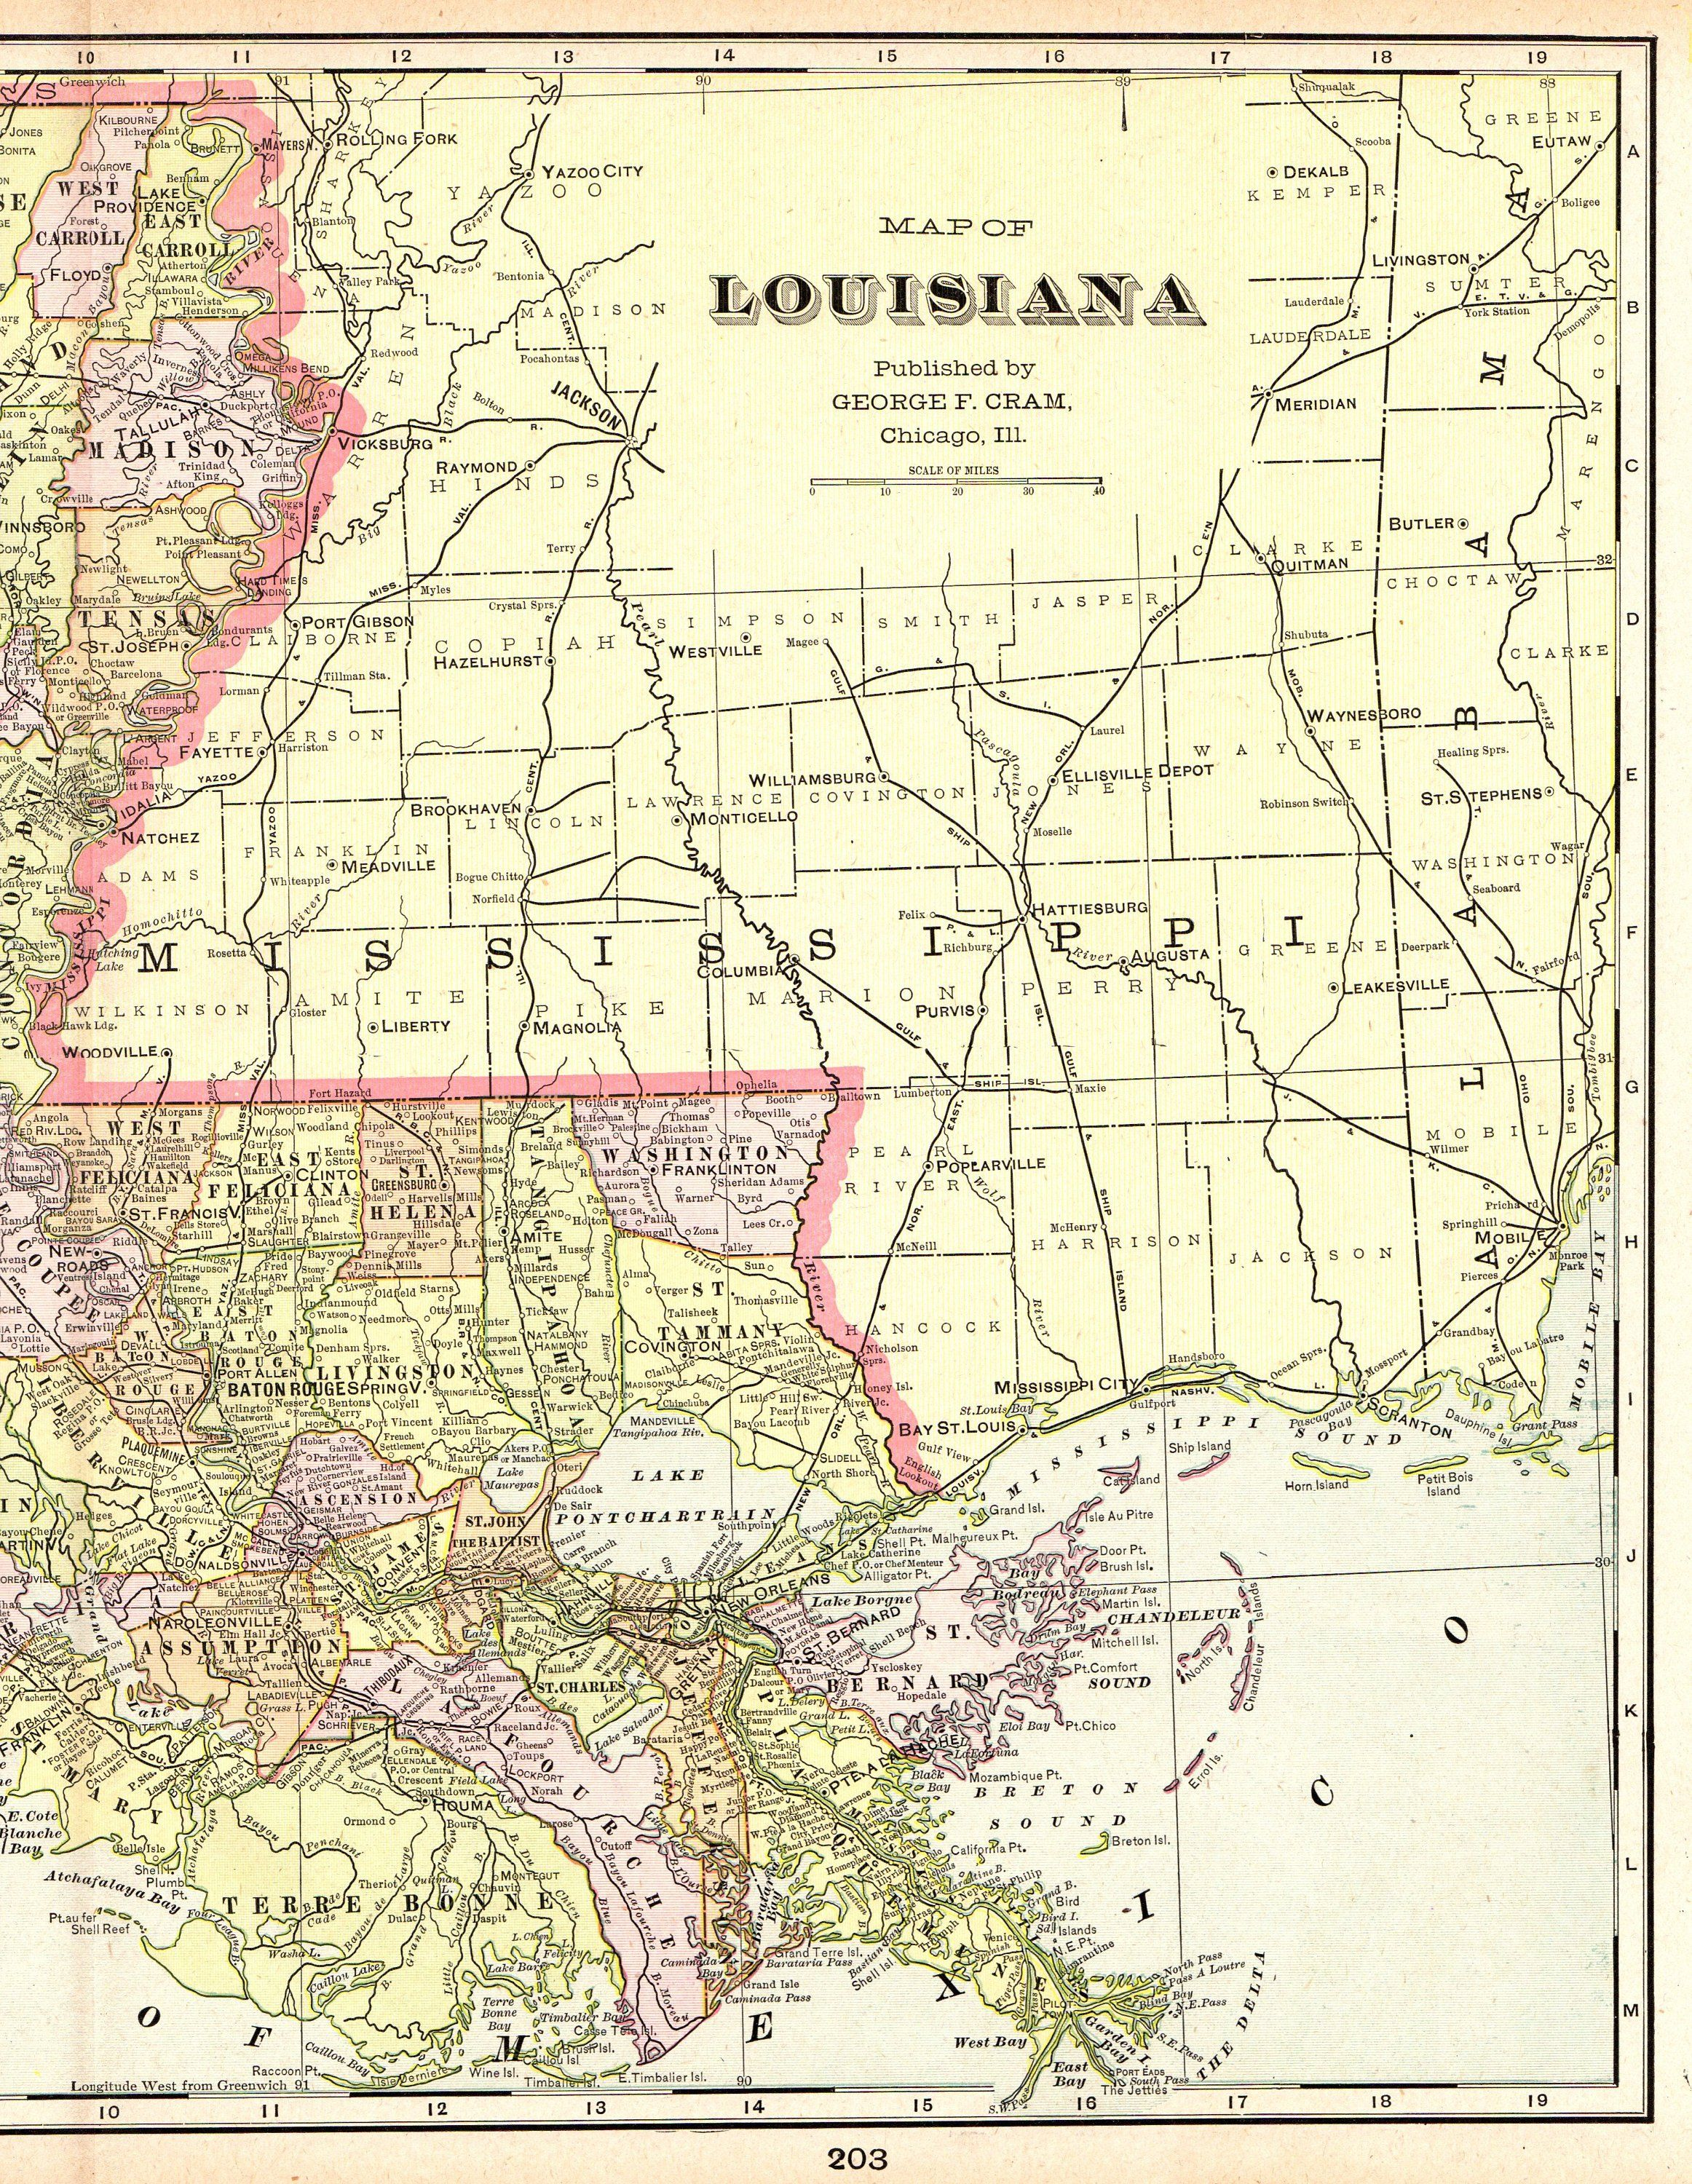 1900 Antique LOUISIANA State Map Vintage Map of Louisiana ... on louisiana landmarks map, louisiana election map, louisiana caribbean map, louisiana oklahoma map, louisiana rat snake identification, louisiana judicial district map, louisiana kisatchie national forest map, louisiana religion map, louisiana state symbol map, louisiana hurricane katrina map, louisiana animal map, louisiana slavery map, south louisiana state map, louisiana federal courts map, louisiana basin map, louisiana indian reservations map, louisiana levee map, louisiana football map, louisiana circuit map, louisiana senate map,